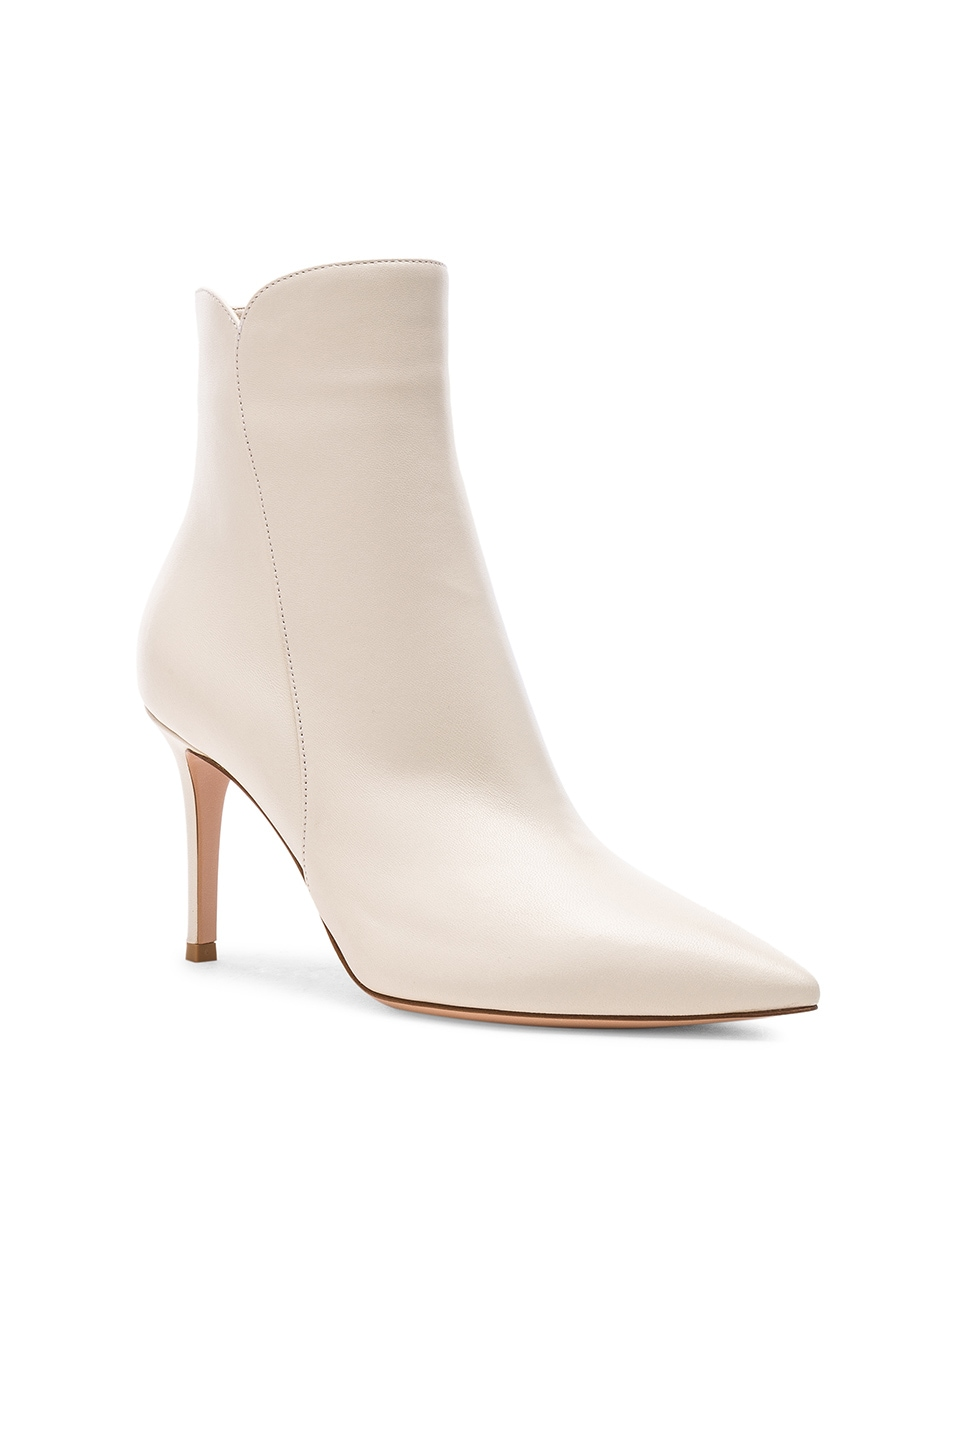 Image 2 of Gianvito Rossi Nappa Leather Levy Ankle Boots in Off White